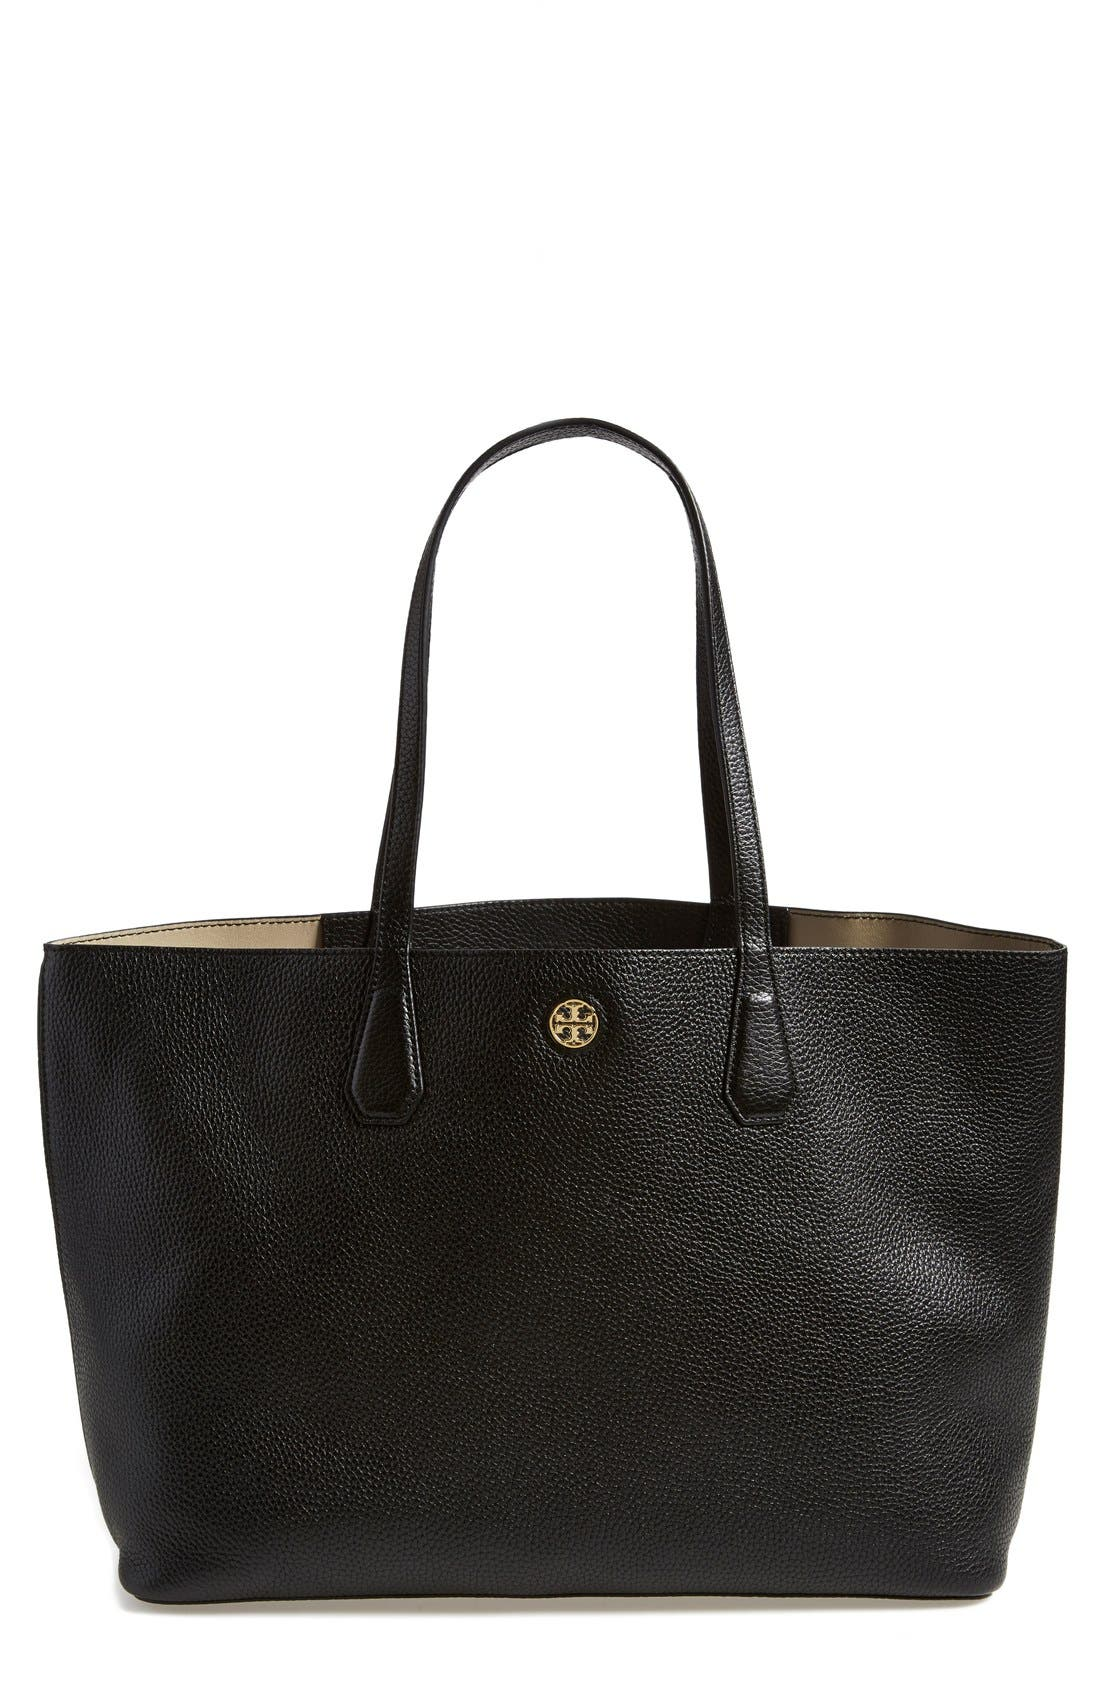 'Perry' Leather Tote,                         Main,                         color, Black/ Beige